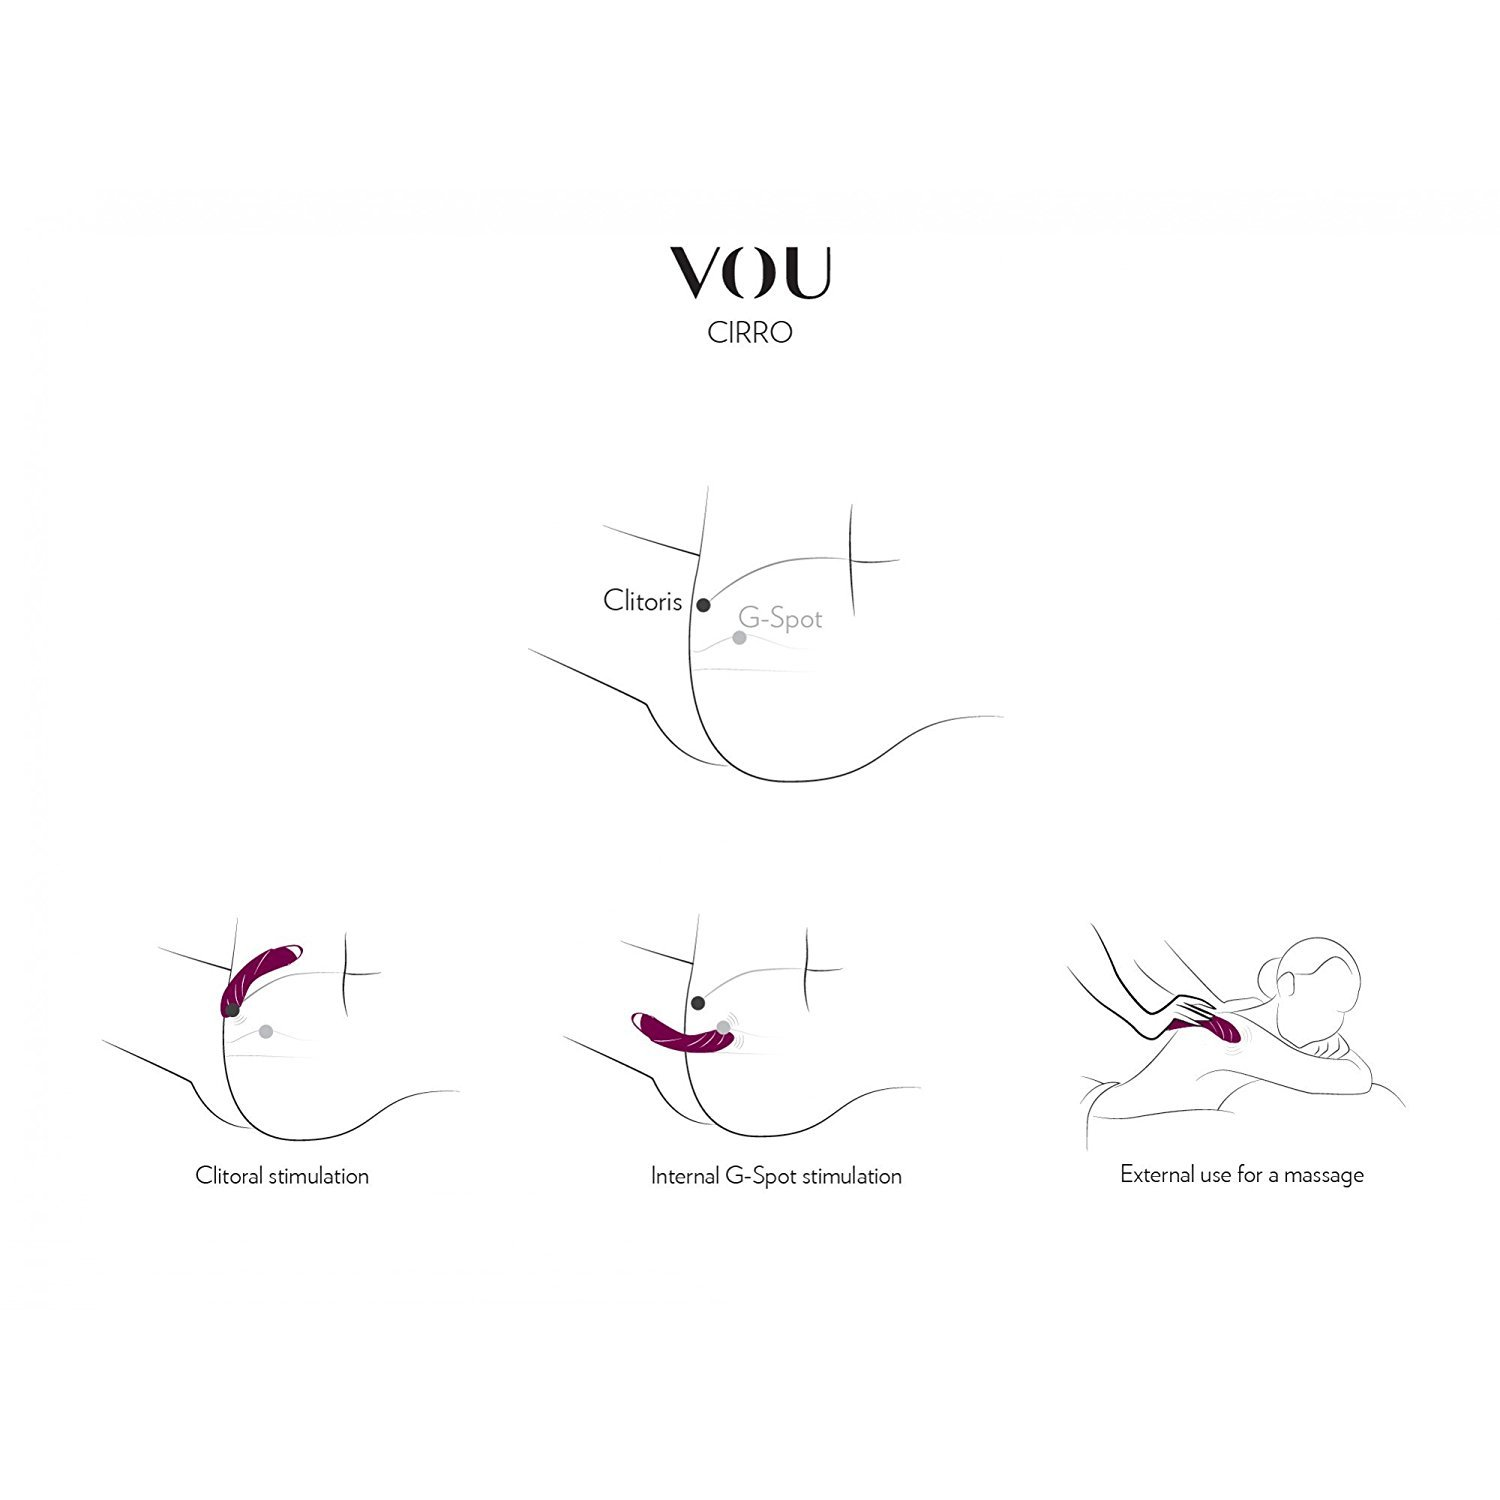 G spot vibrator with 7 modes luxury sex toy cirro vou amazon g spot vibrator with 7 modes luxury sex toy cirro vou amazon health personal care pooptronica